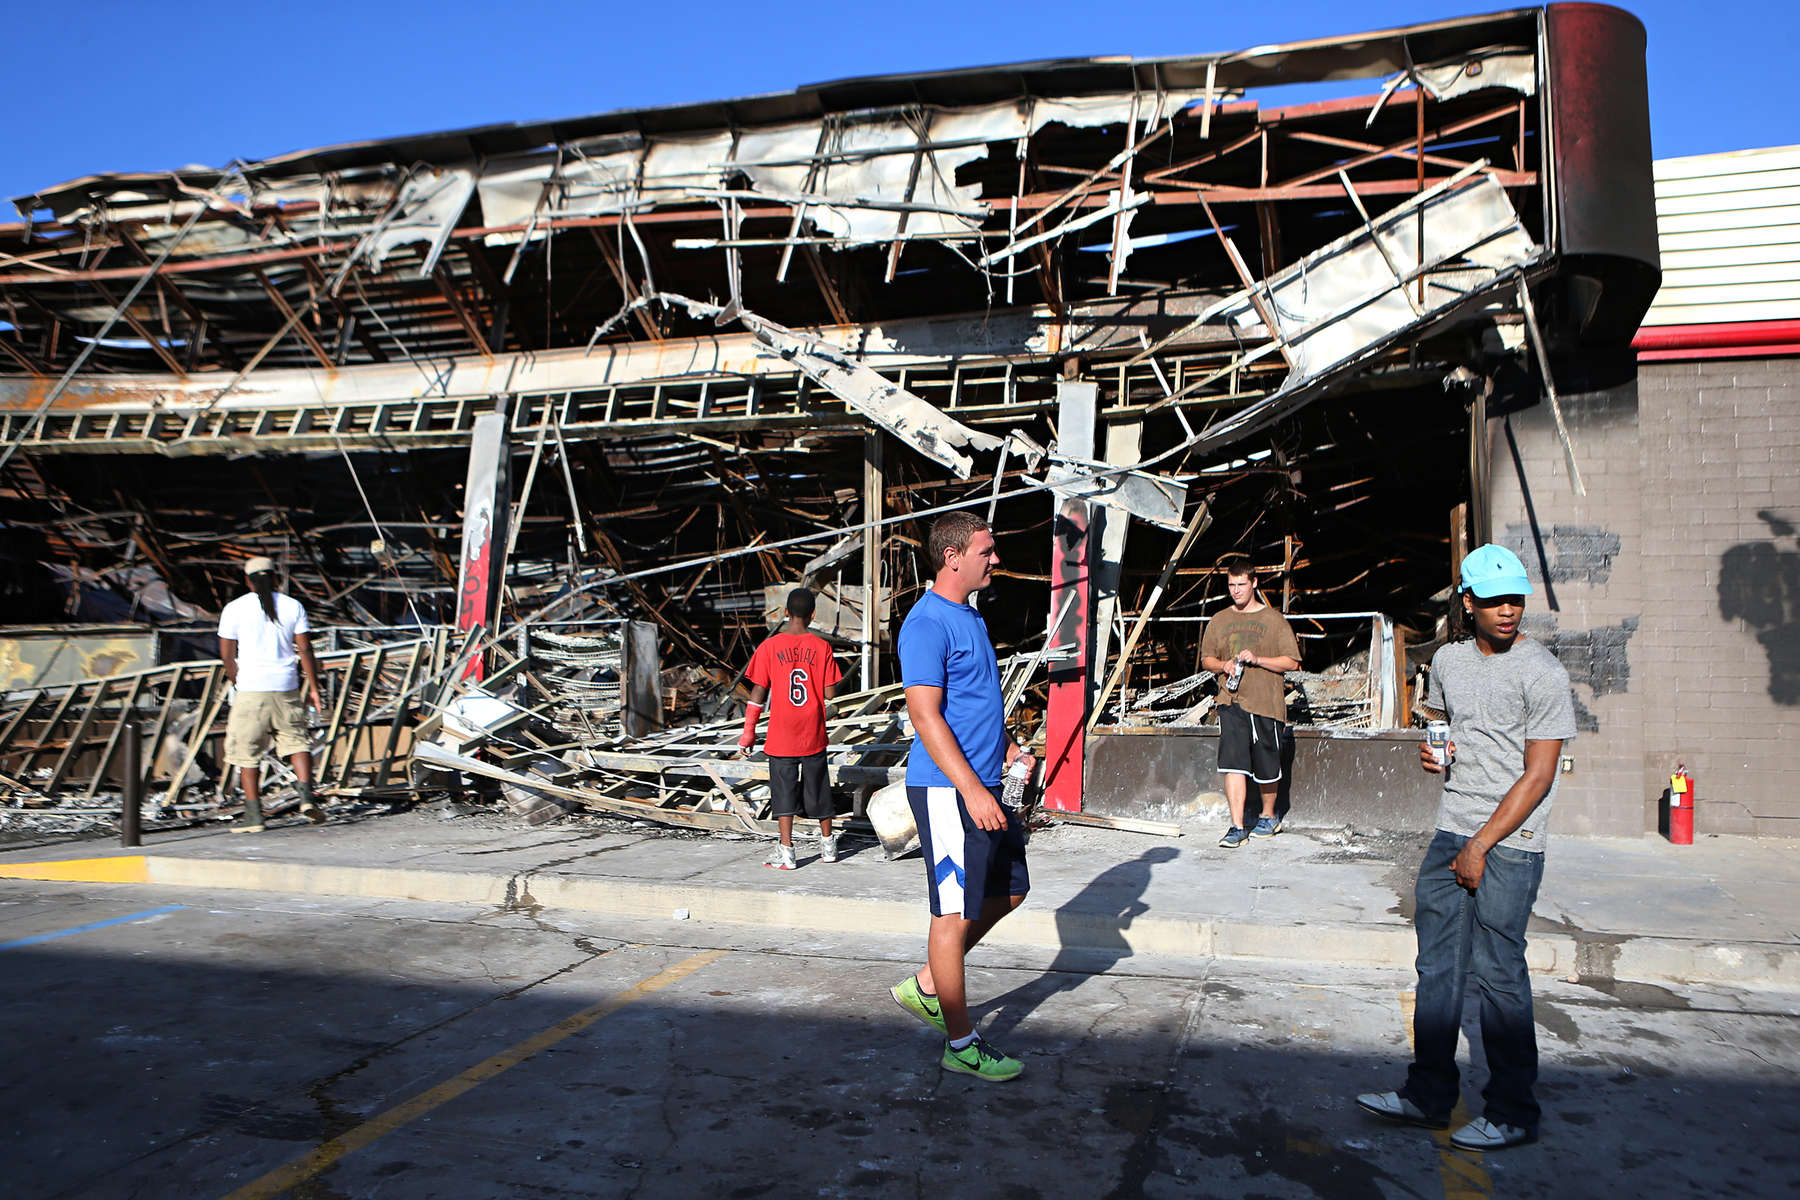 Brent Kirby (center), 23, from Florissant, and Del Foster (right), 20, from Ferguson, check out the burnt out QuikTrip in Ferguson, Mo. on Tuesday, Aug. 12, 2014.  The QuikTrip, that was burned down by looters two days earlier, become a focal point for clashes between police and protesters.